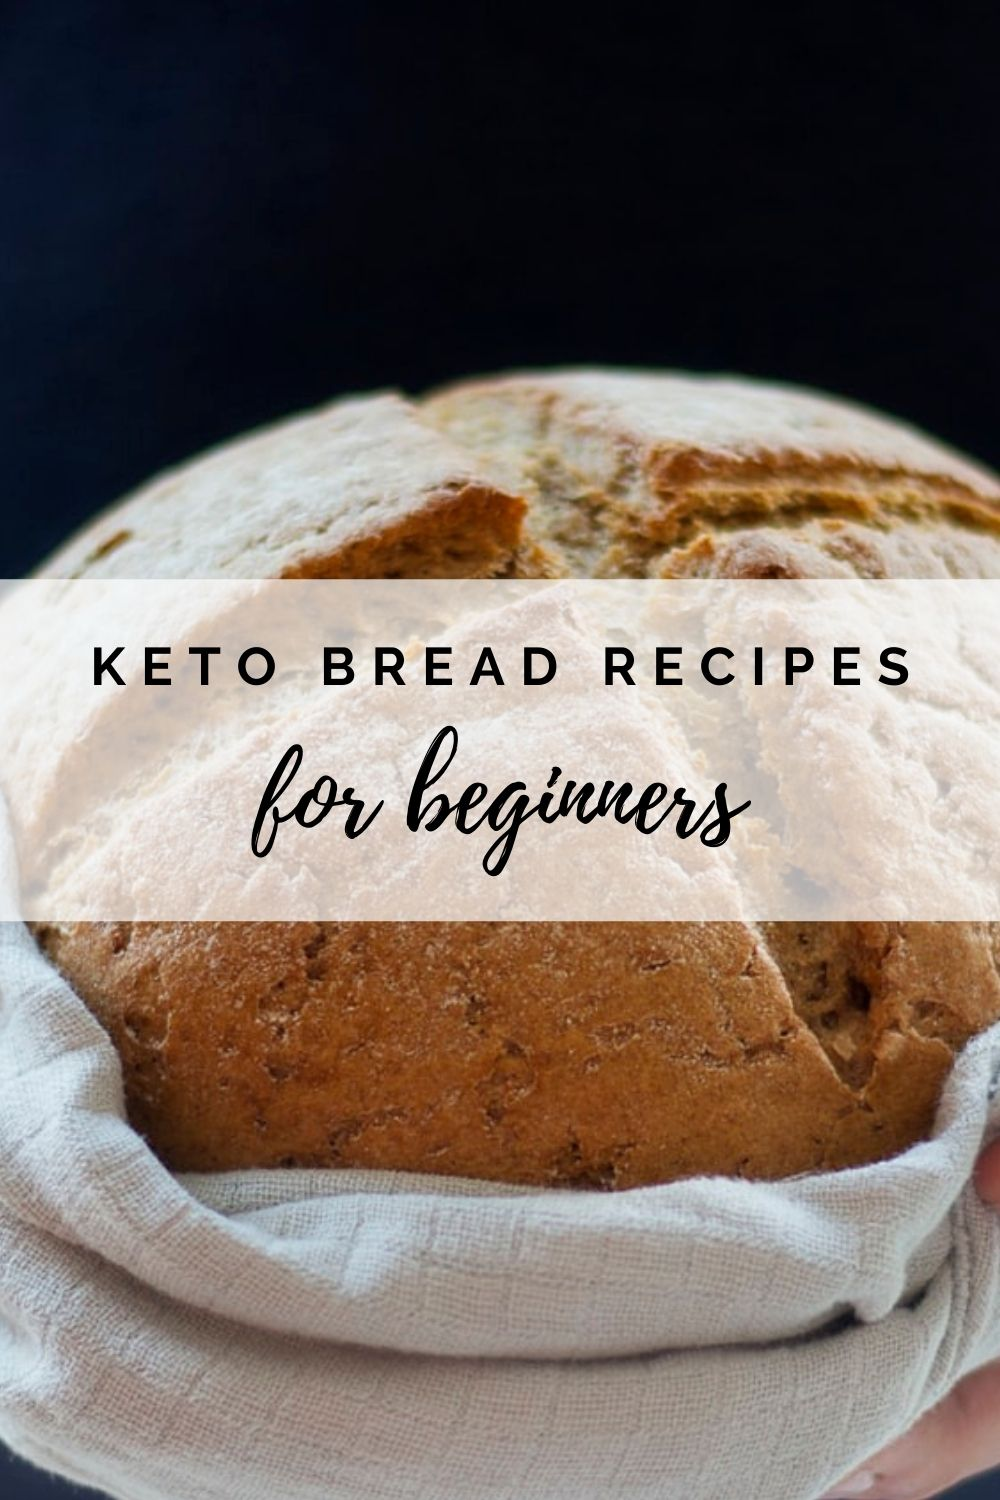 eto Bread Recipes For Beginners - Find out how many different ways there are to bake grain-free keto bread that will fit your diet needs! There's nothing better than freshly baked bread without all those carbs. We've compiled some fantastic recipes as well as tips on where to find ingredients so you can start baking today. From vegan, gluten-free, dairy-free, these recipes have something for everyone, whether you're looking for breakfast.